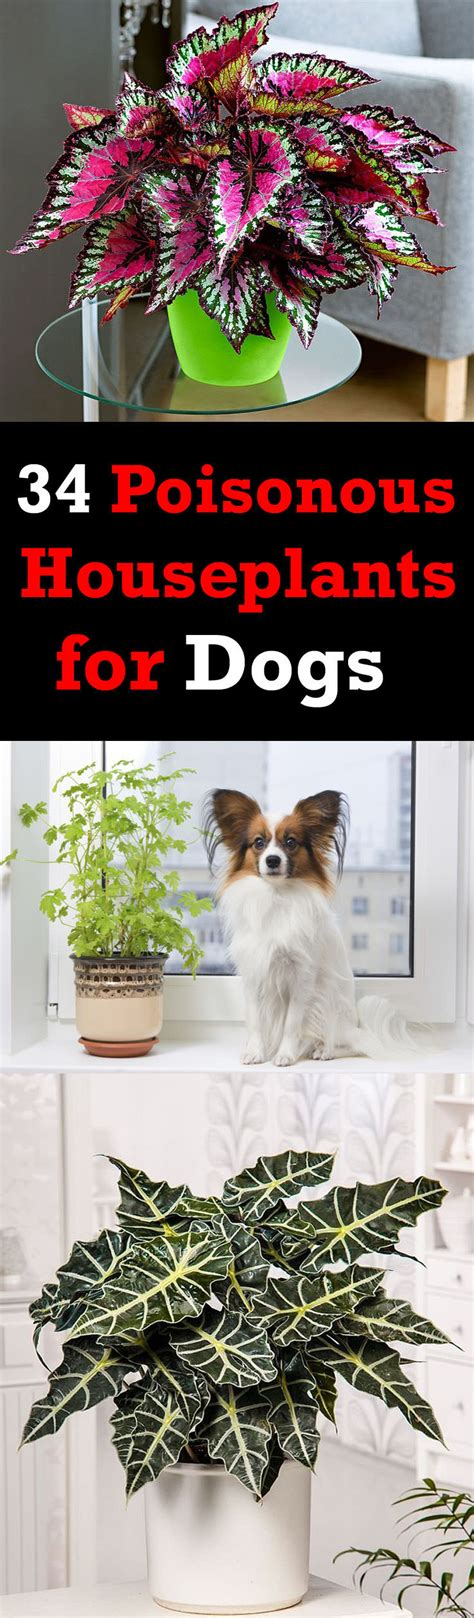 poisonous house plants for dogs 34 poisonous houseplants for dogs plants toxic to dogs balcony garden web